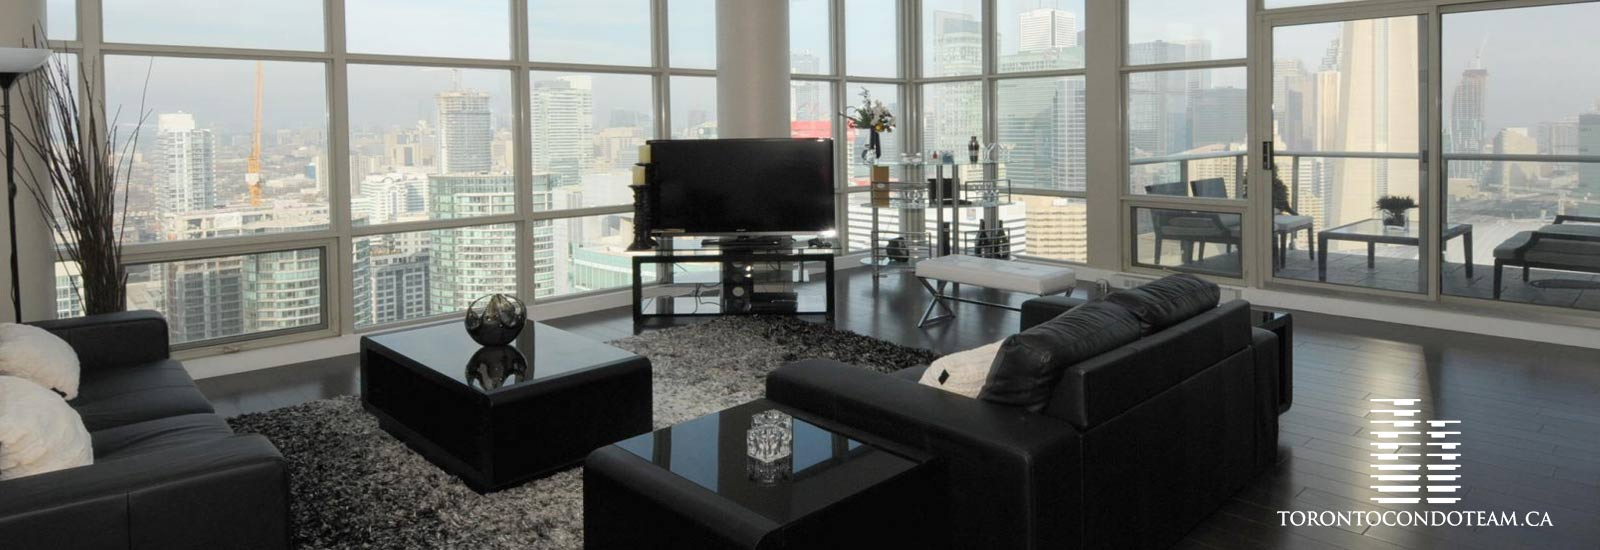 10 Navy Wharf Court Condos For Sale